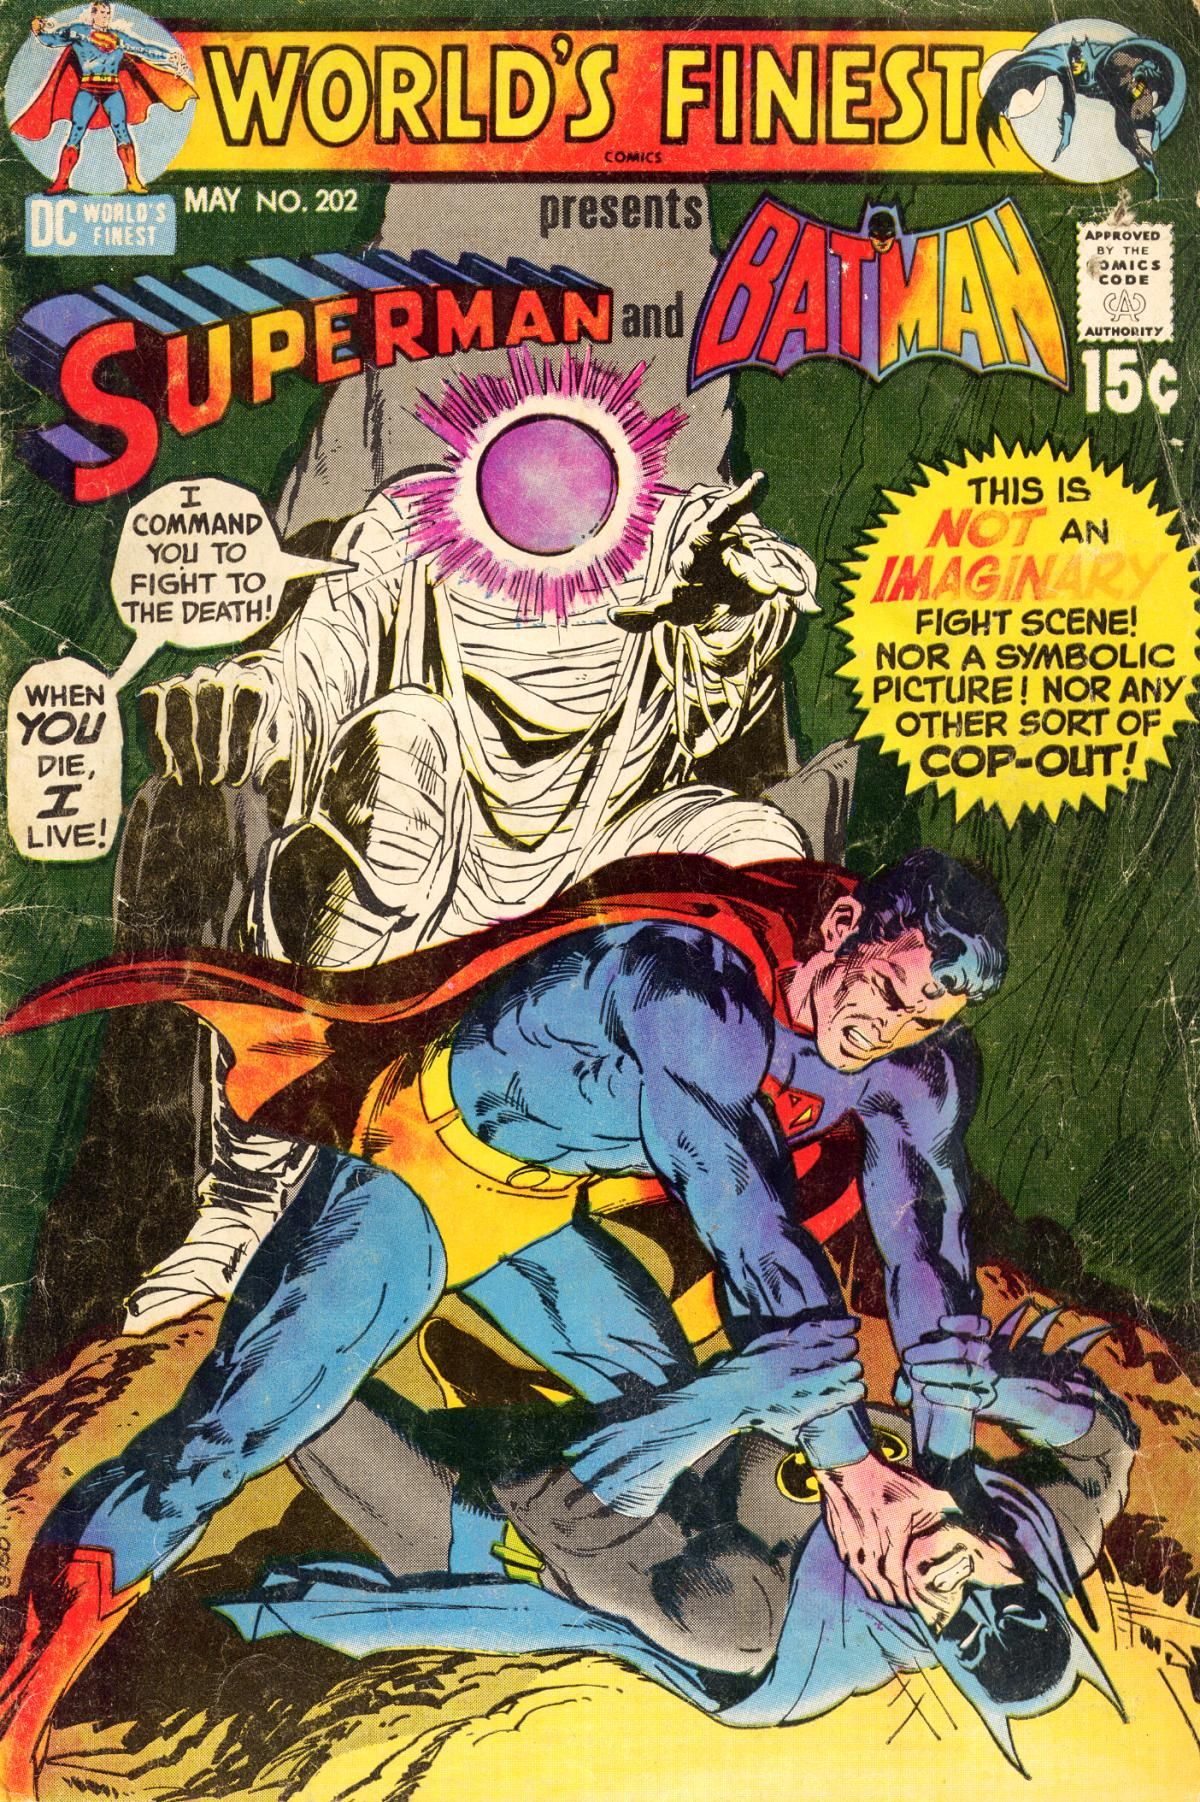 """""""This is NOT an IMAGINARY fight scene!"""" :-) - World's Finest Comics #202 (May 1971) - Cover by Neal Adams and Dick Giordano"""